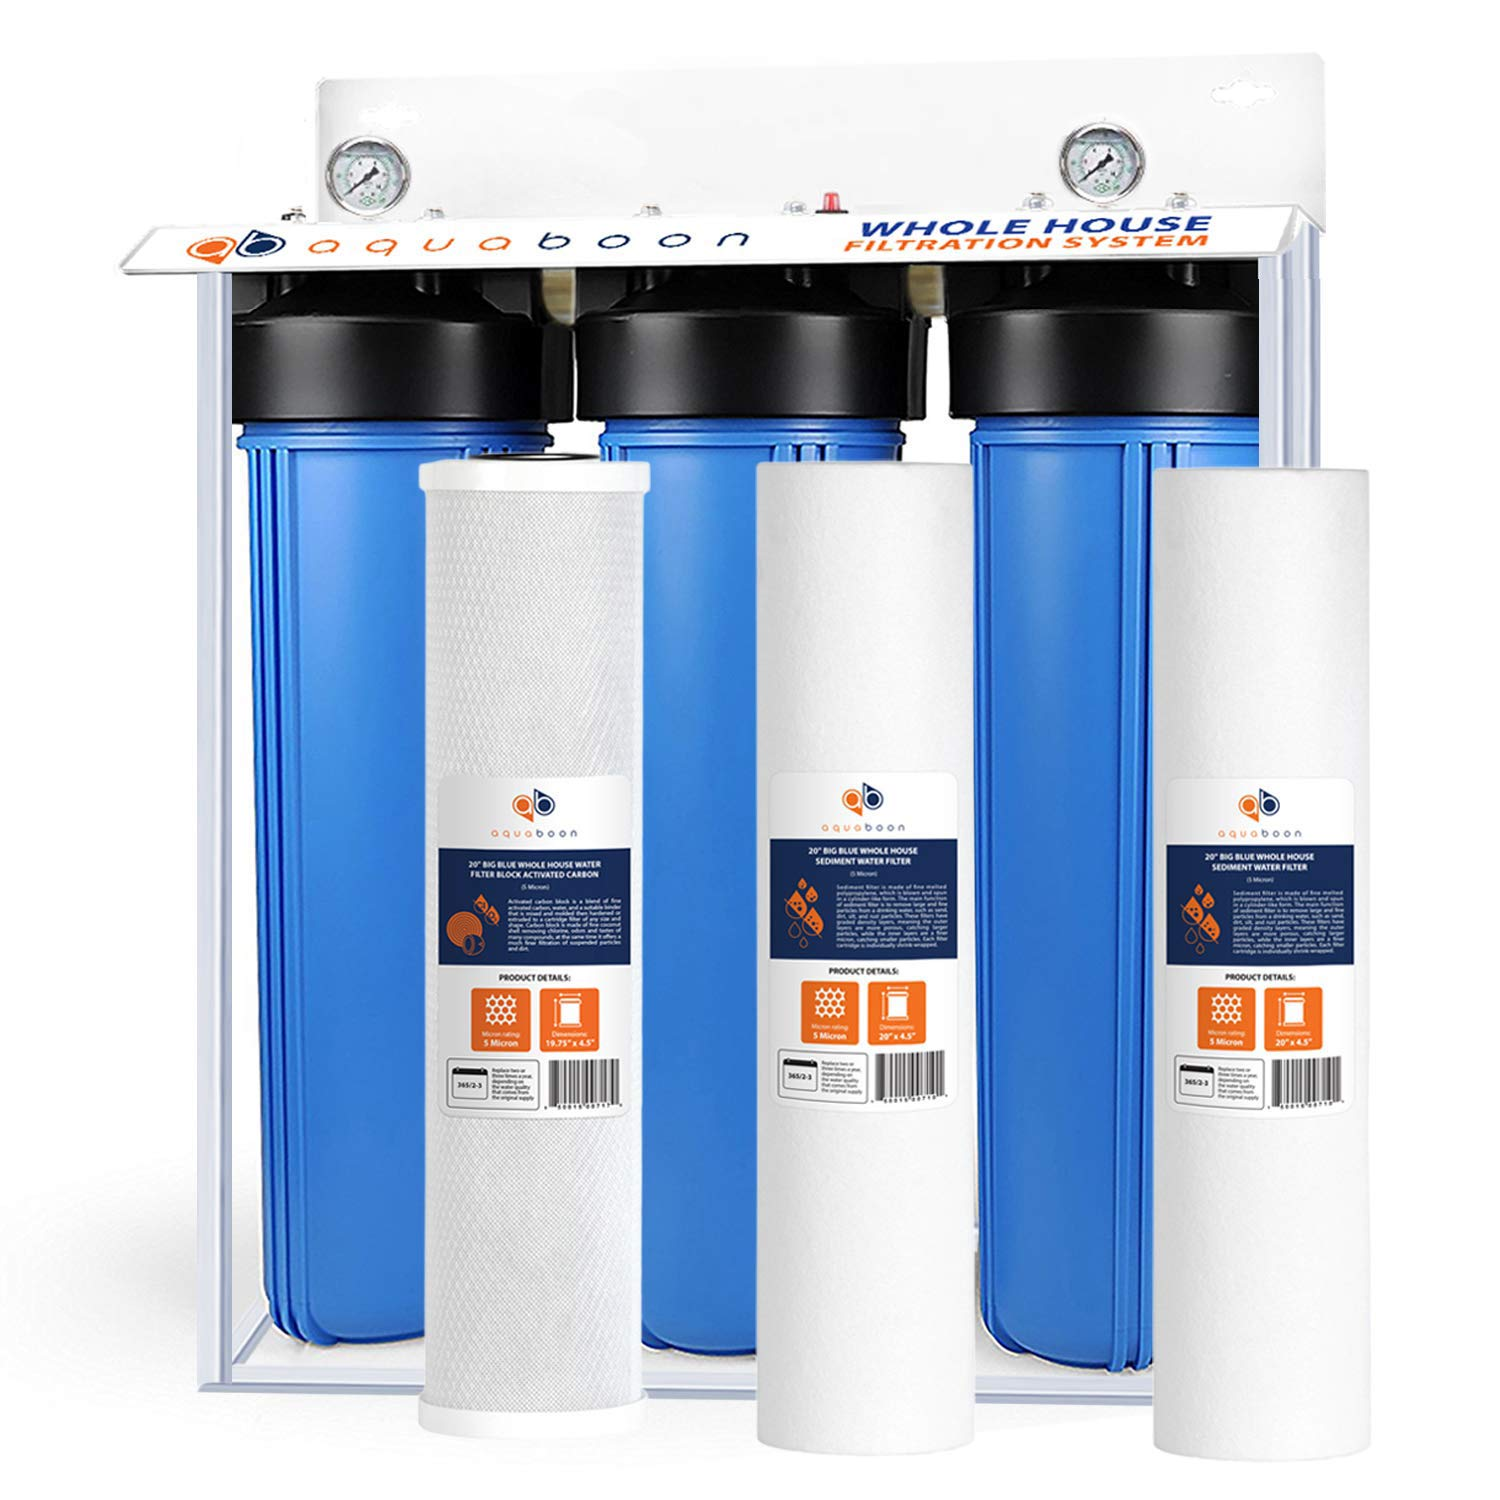 3-Stage Big Blue 20'' Whole House Filtration System by Aquaboon+ Freestanding Steal Frame+Pressure Gauges+Carbon Block+2 of Sediment Filter Cartridges by Aquaboon